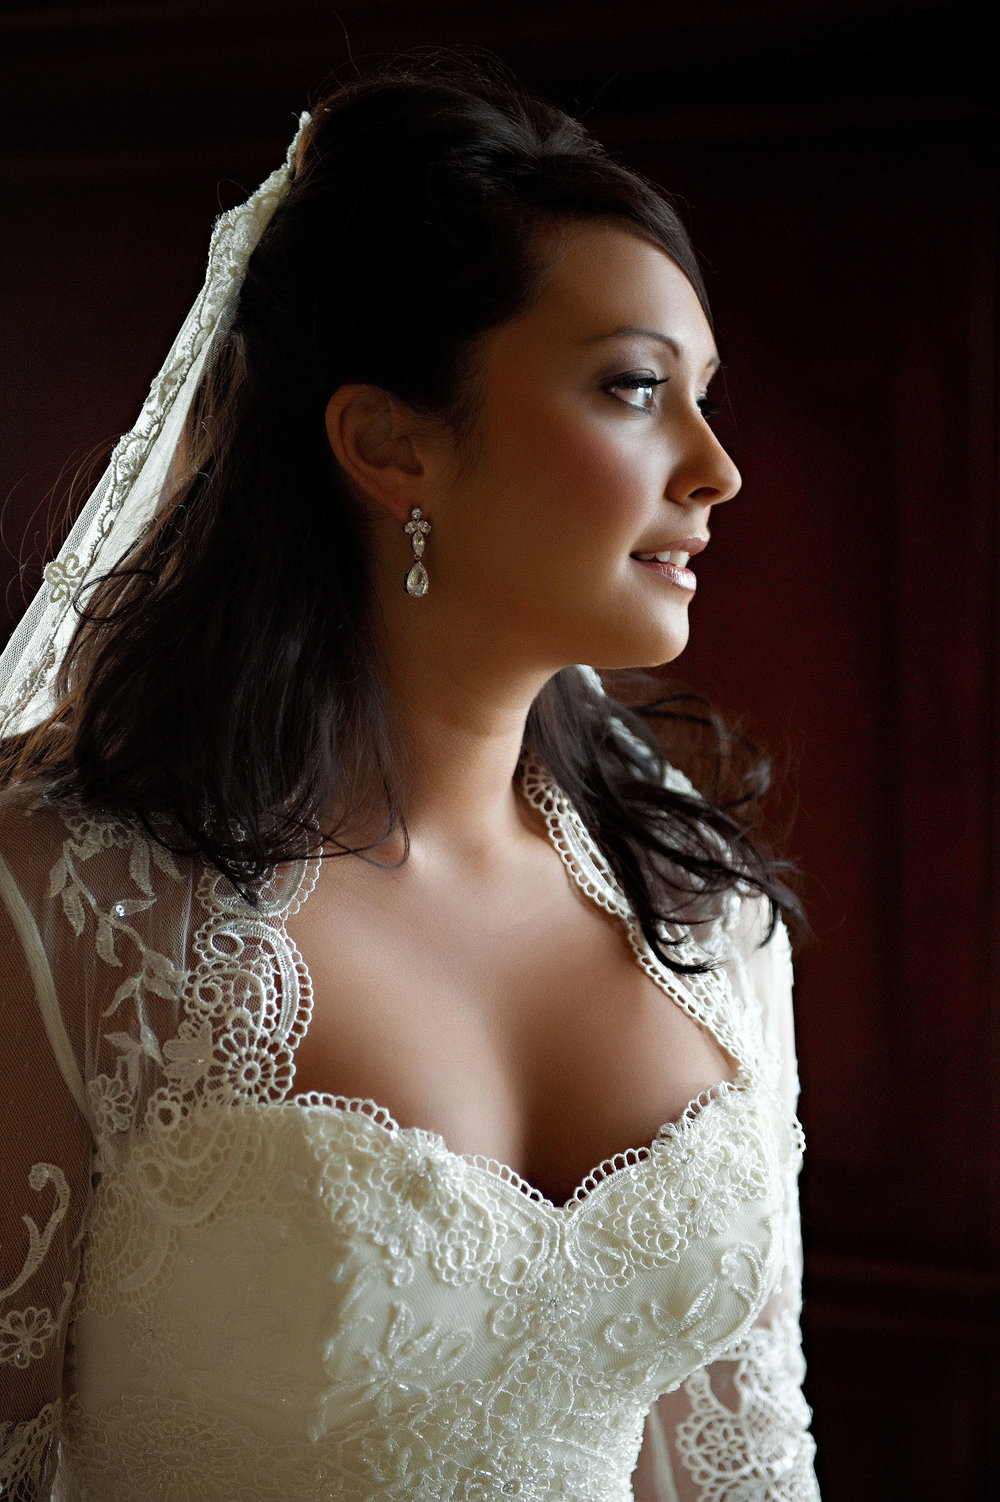 Bridal portrait in hotel room at the Manchester Grand Hyatt Regency in San Diego.